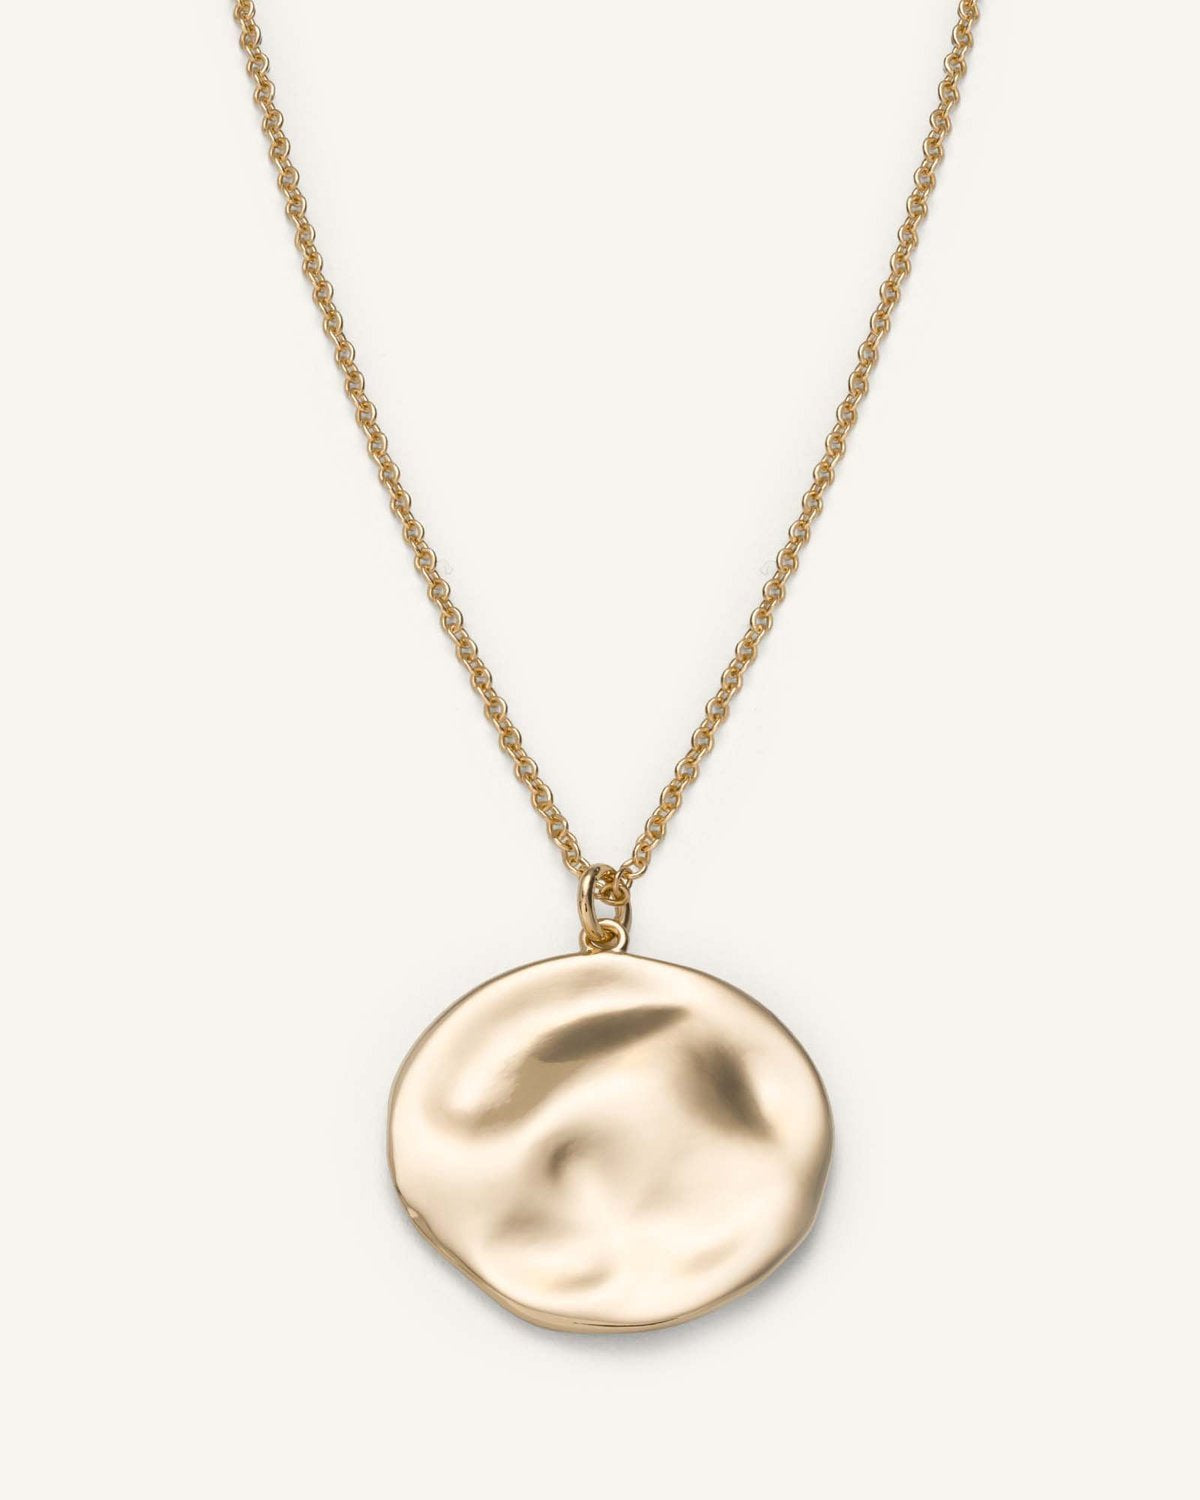 Textured Coin Necklace / Gold